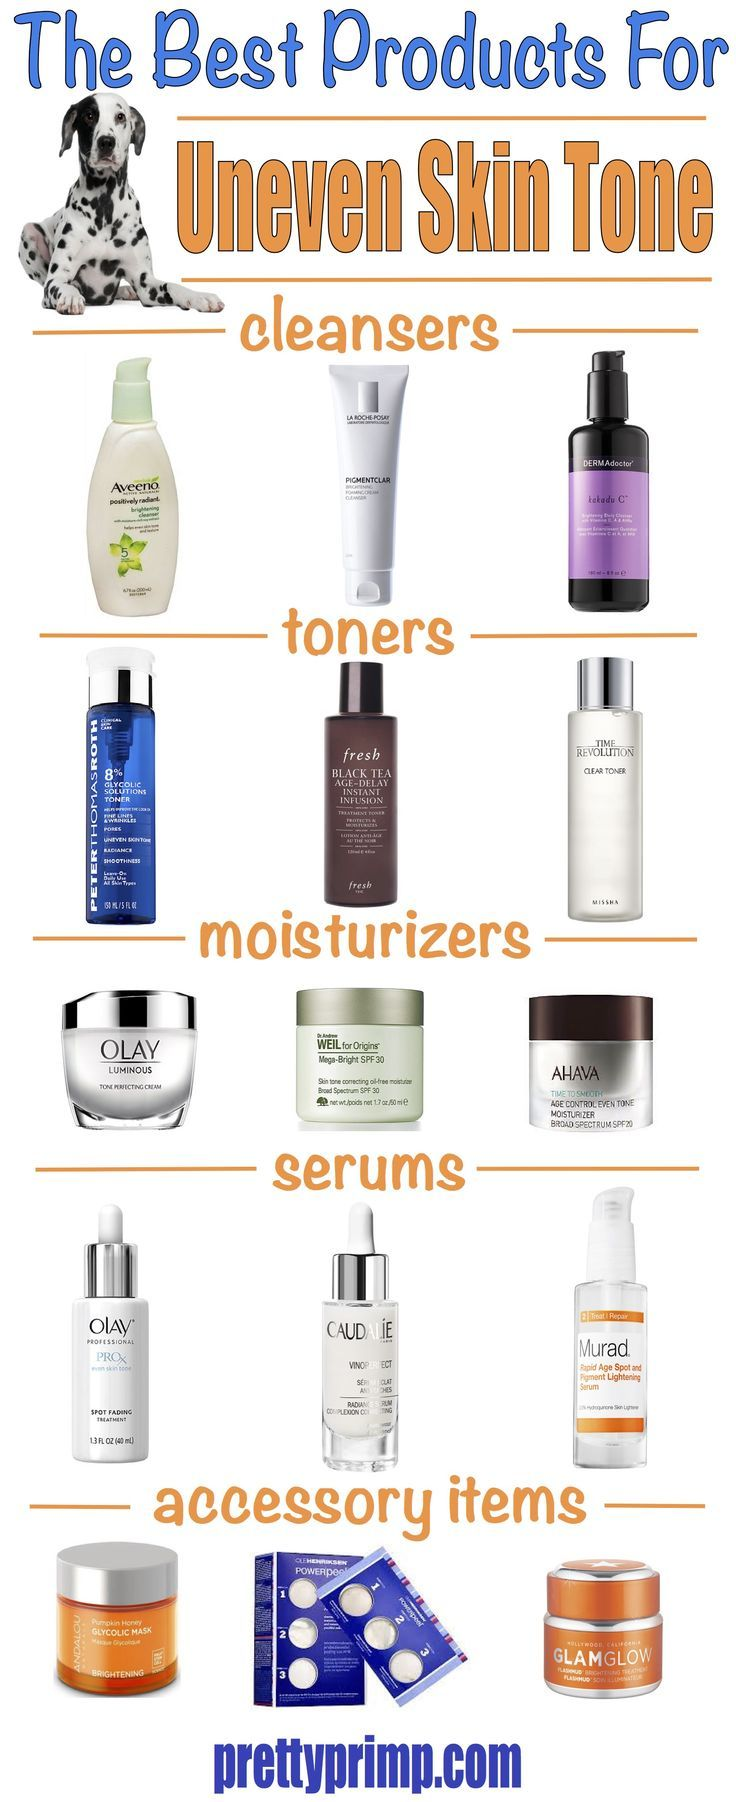 15 Best Products For Uneven Skin Tone That Eliminate Pesky Dark Spots Uneven Skin Tone Uneven Skin Natural Skin Lightening